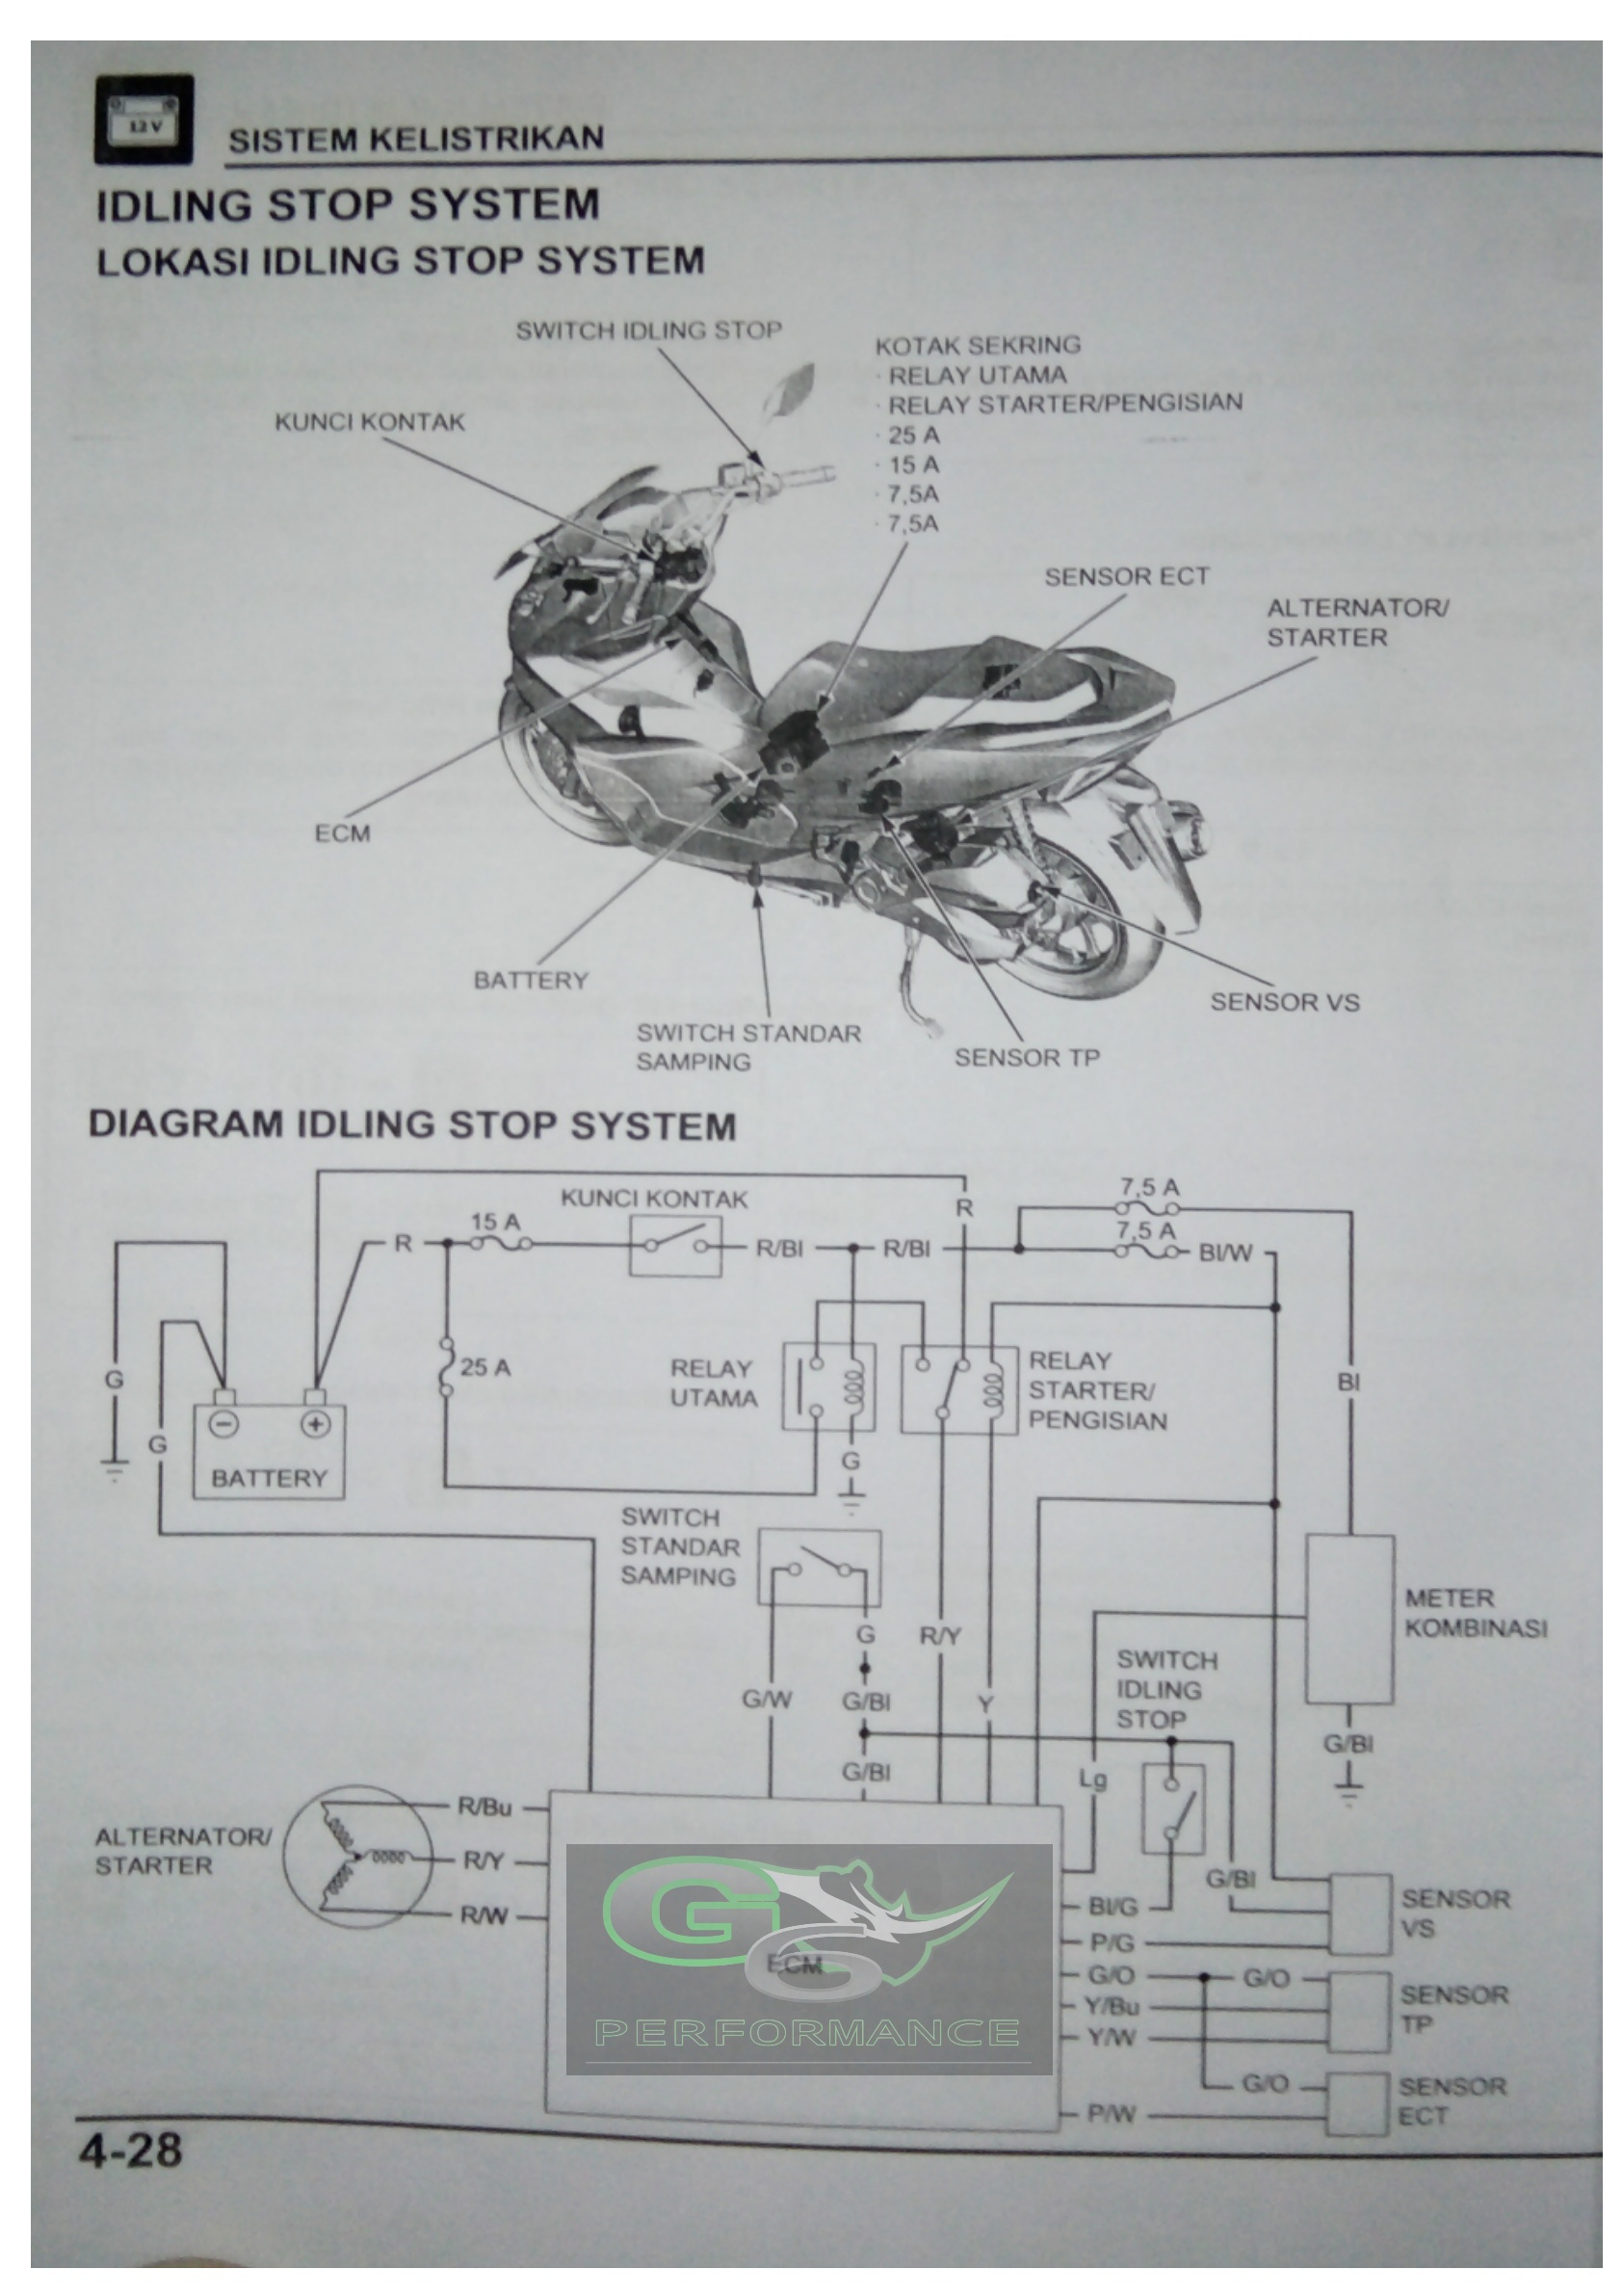 small resolution of electric wiring system diagram honda new pcx 150 2018 gisix s blog honda pcx 150 wiring diagram wiring diagram honda pcx